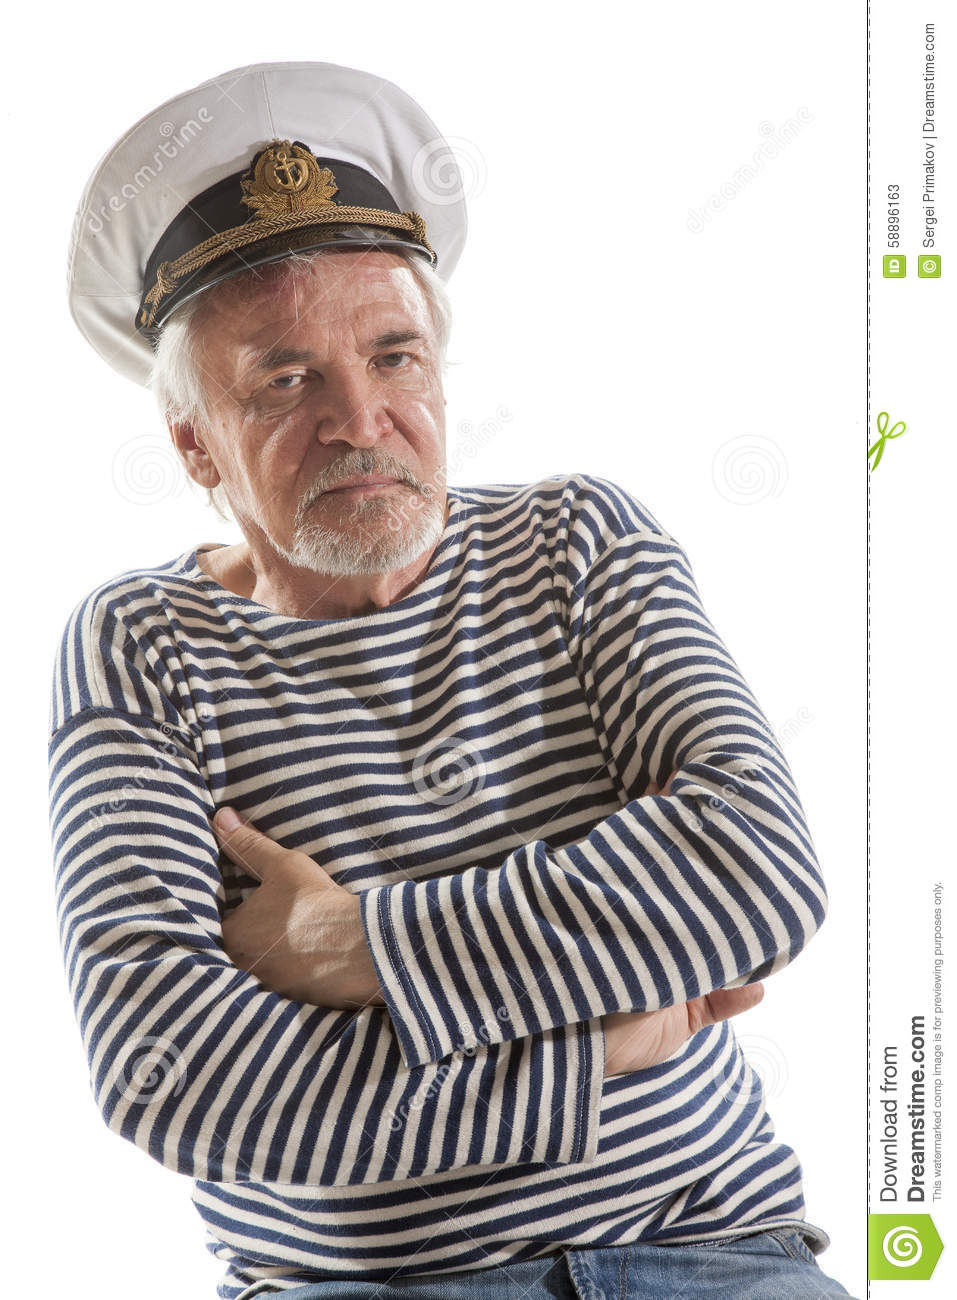 86e18e86d0de4 Portrait of old sailor man in striped shirt and hat isolated on white  background